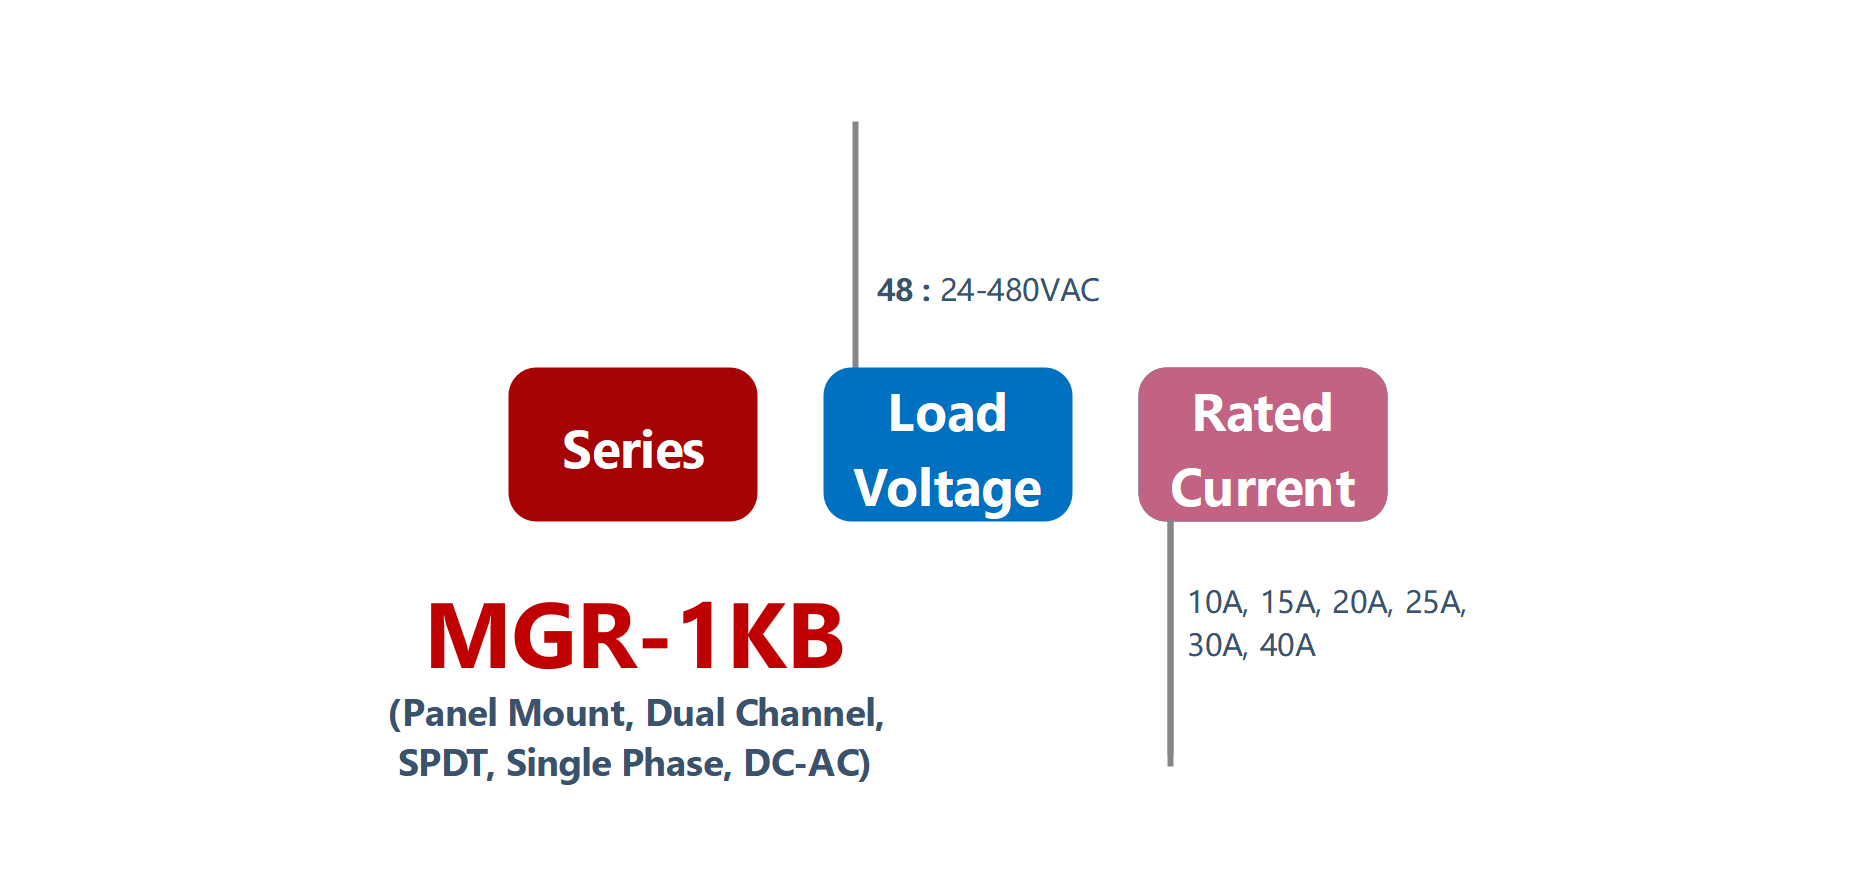 How to order MGR-1KB Series Panel Mount Solid State Relay